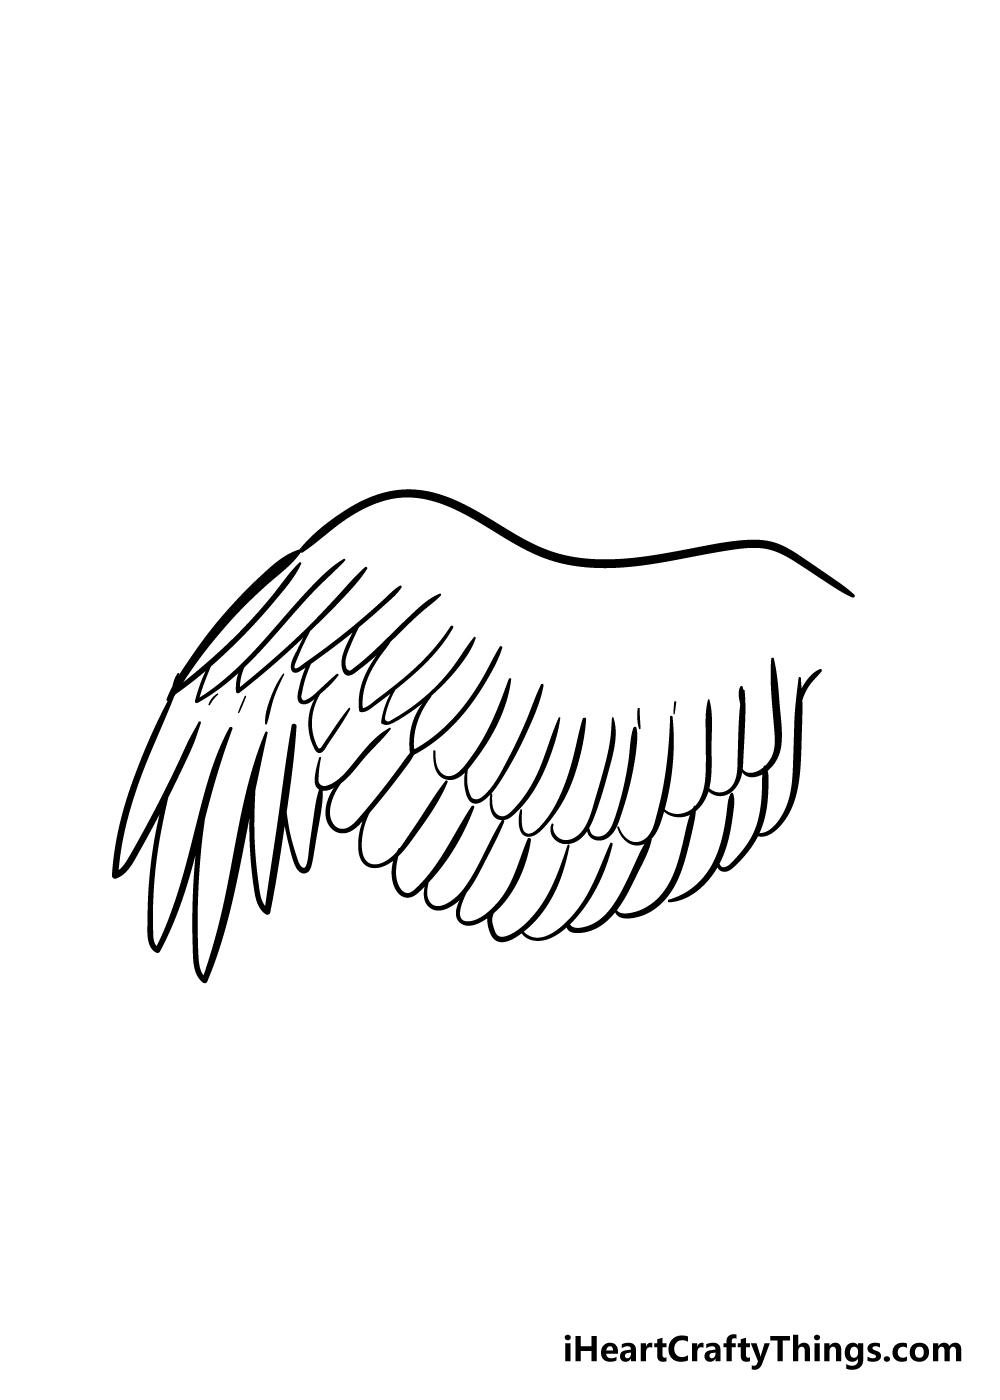 wing drawing step 5